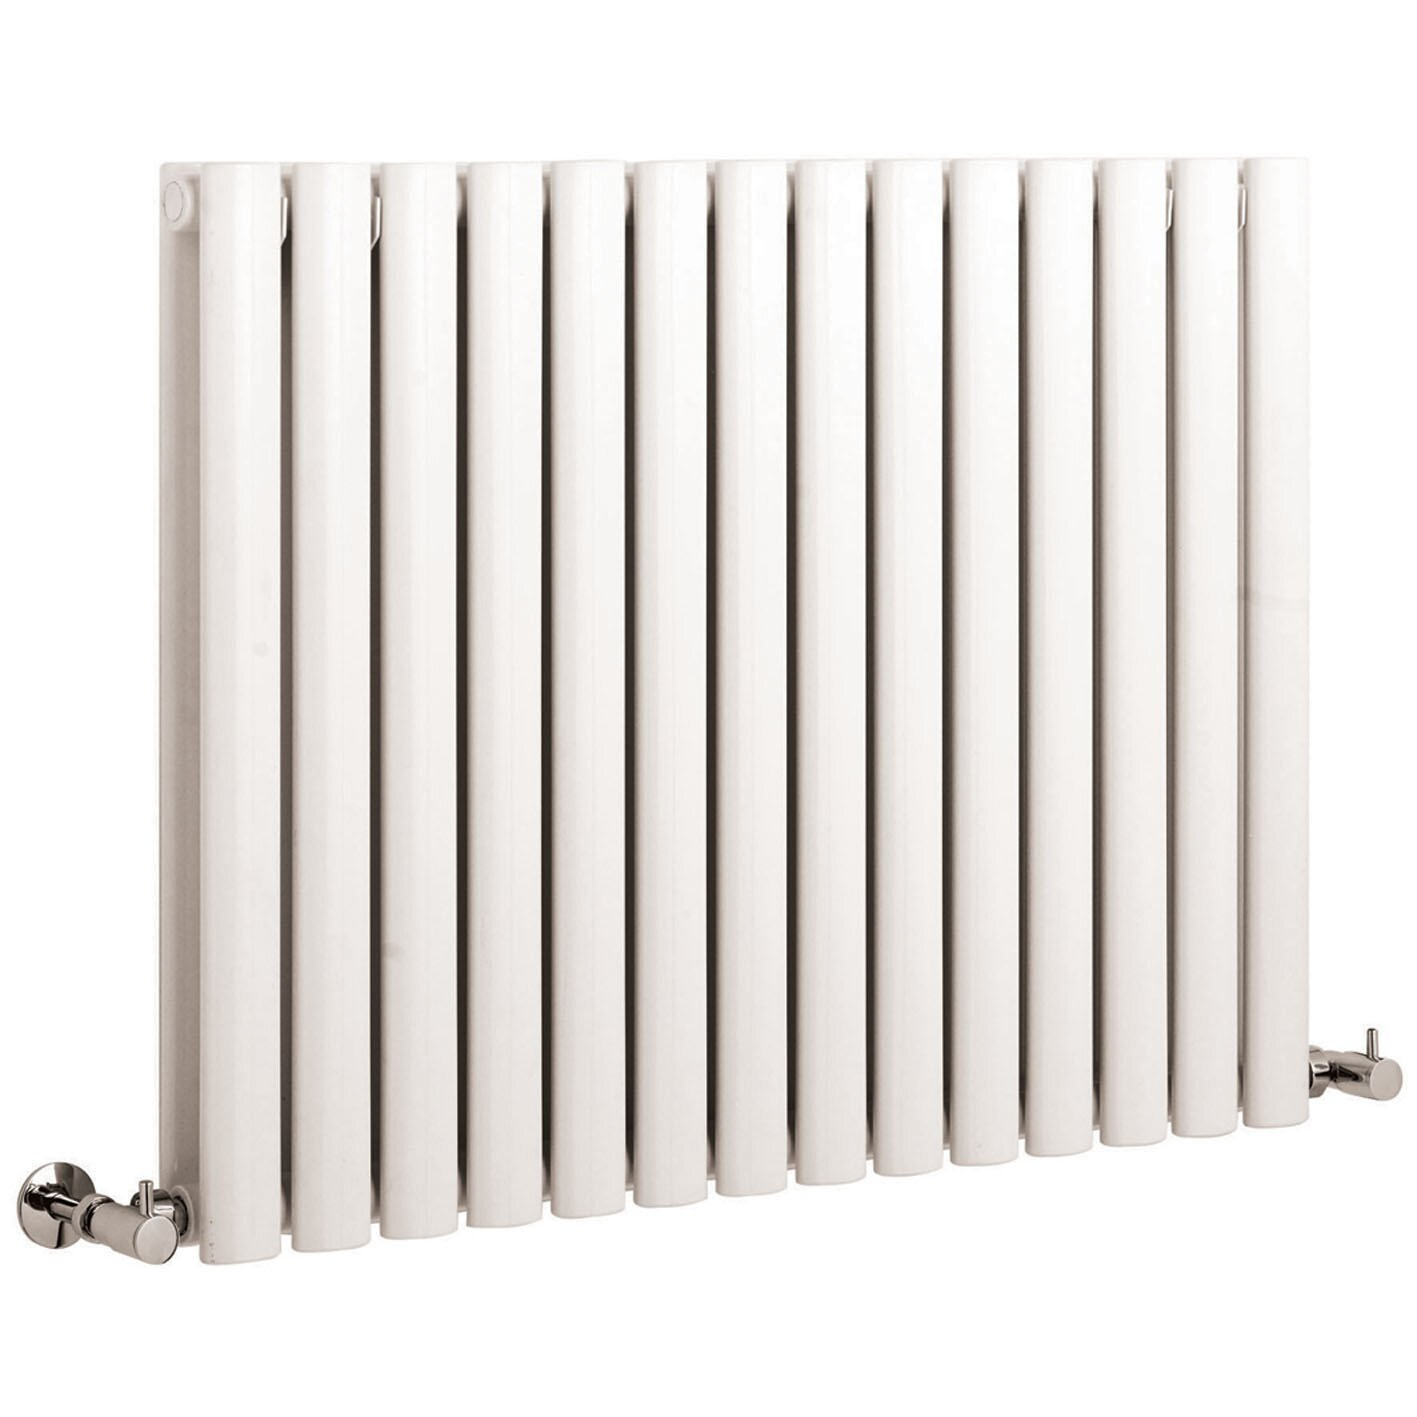 Hudson Reed Revive Horizontal Double Panel Radiator  : ReviveHorizontalDoublePanelRadiator from www.wayfair.co.uk size 1417 x 1417 jpeg 100kB